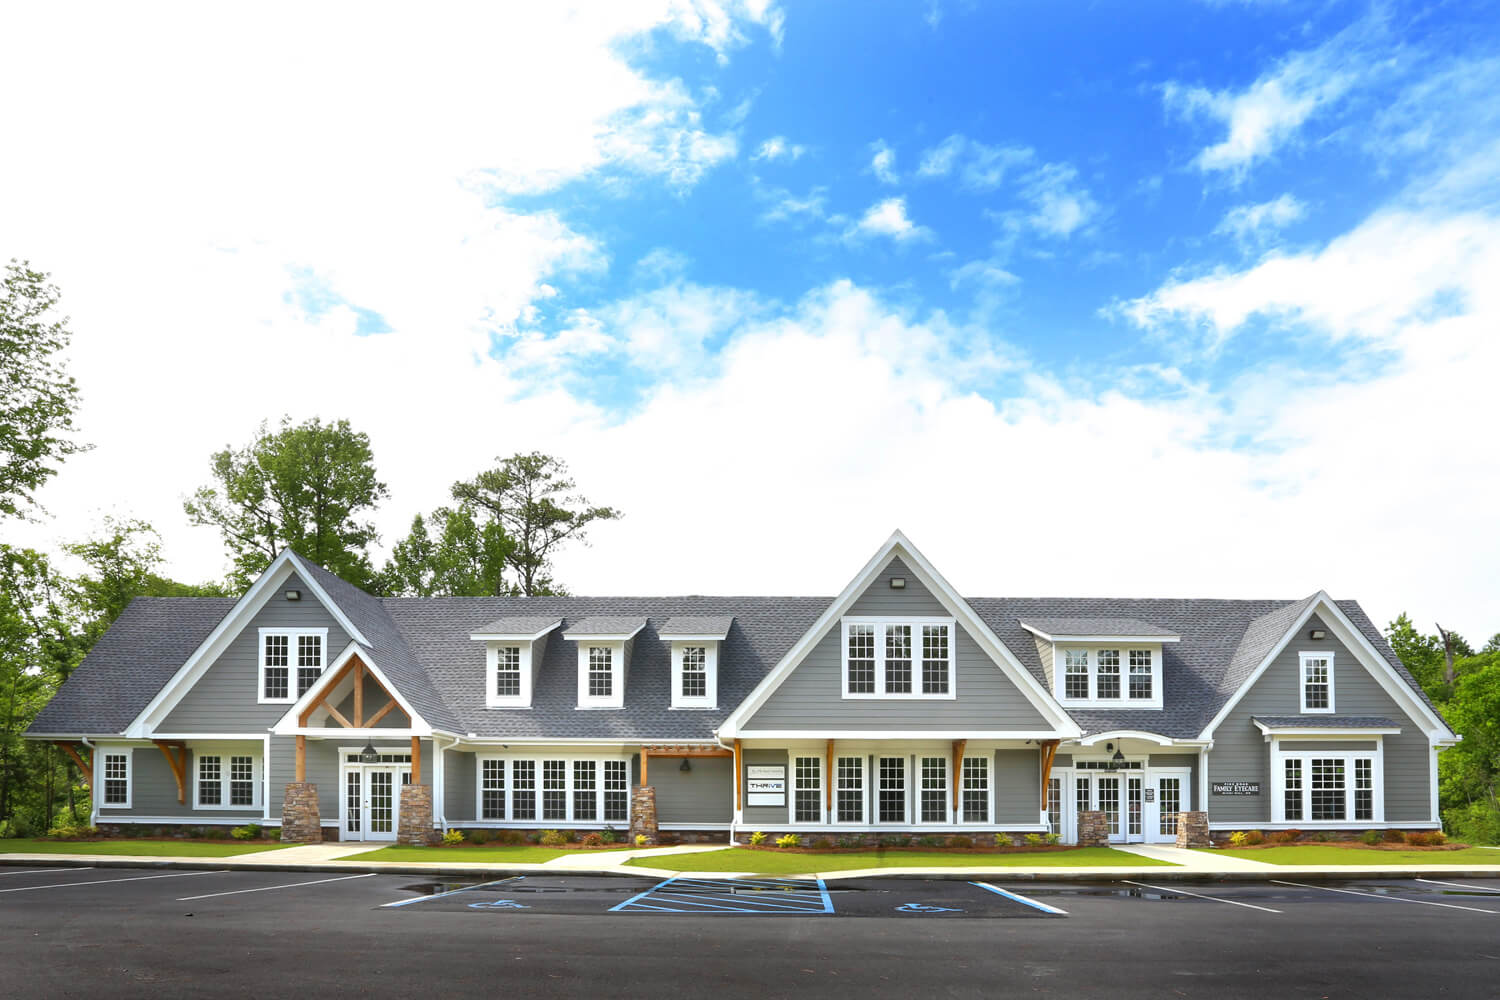 Pike Road Family Eyecare Designed by Foshee Architecture – View of Front Elevation